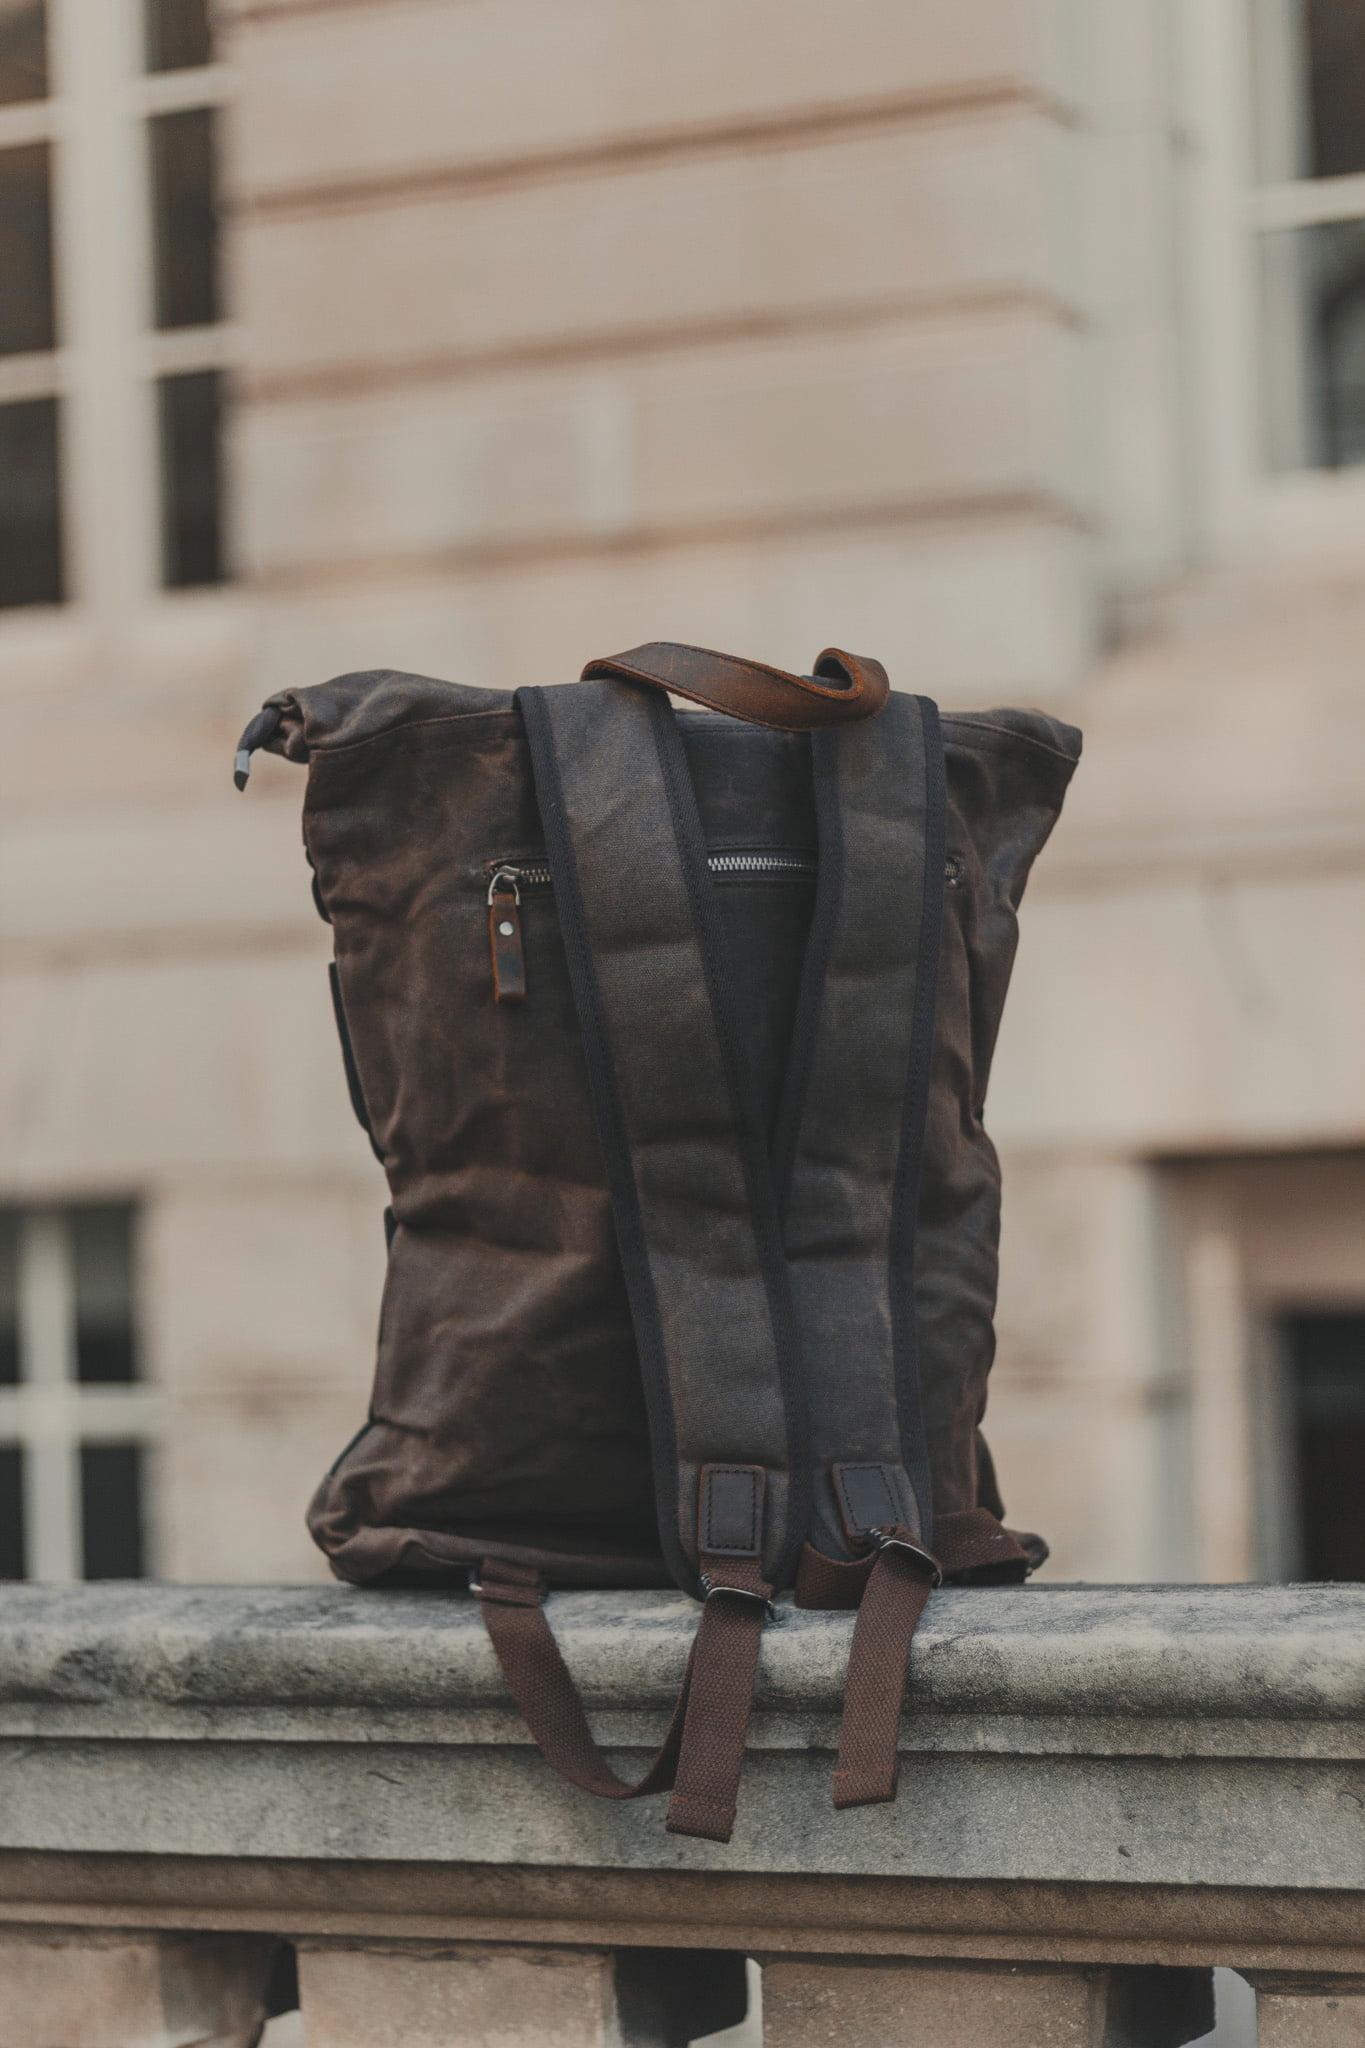 Waxed Cotton Canvas and Leather Backpack Rucksack - Menswear Denim Rugged Style Outfit - The Farnborough in Graphite by Oldfield